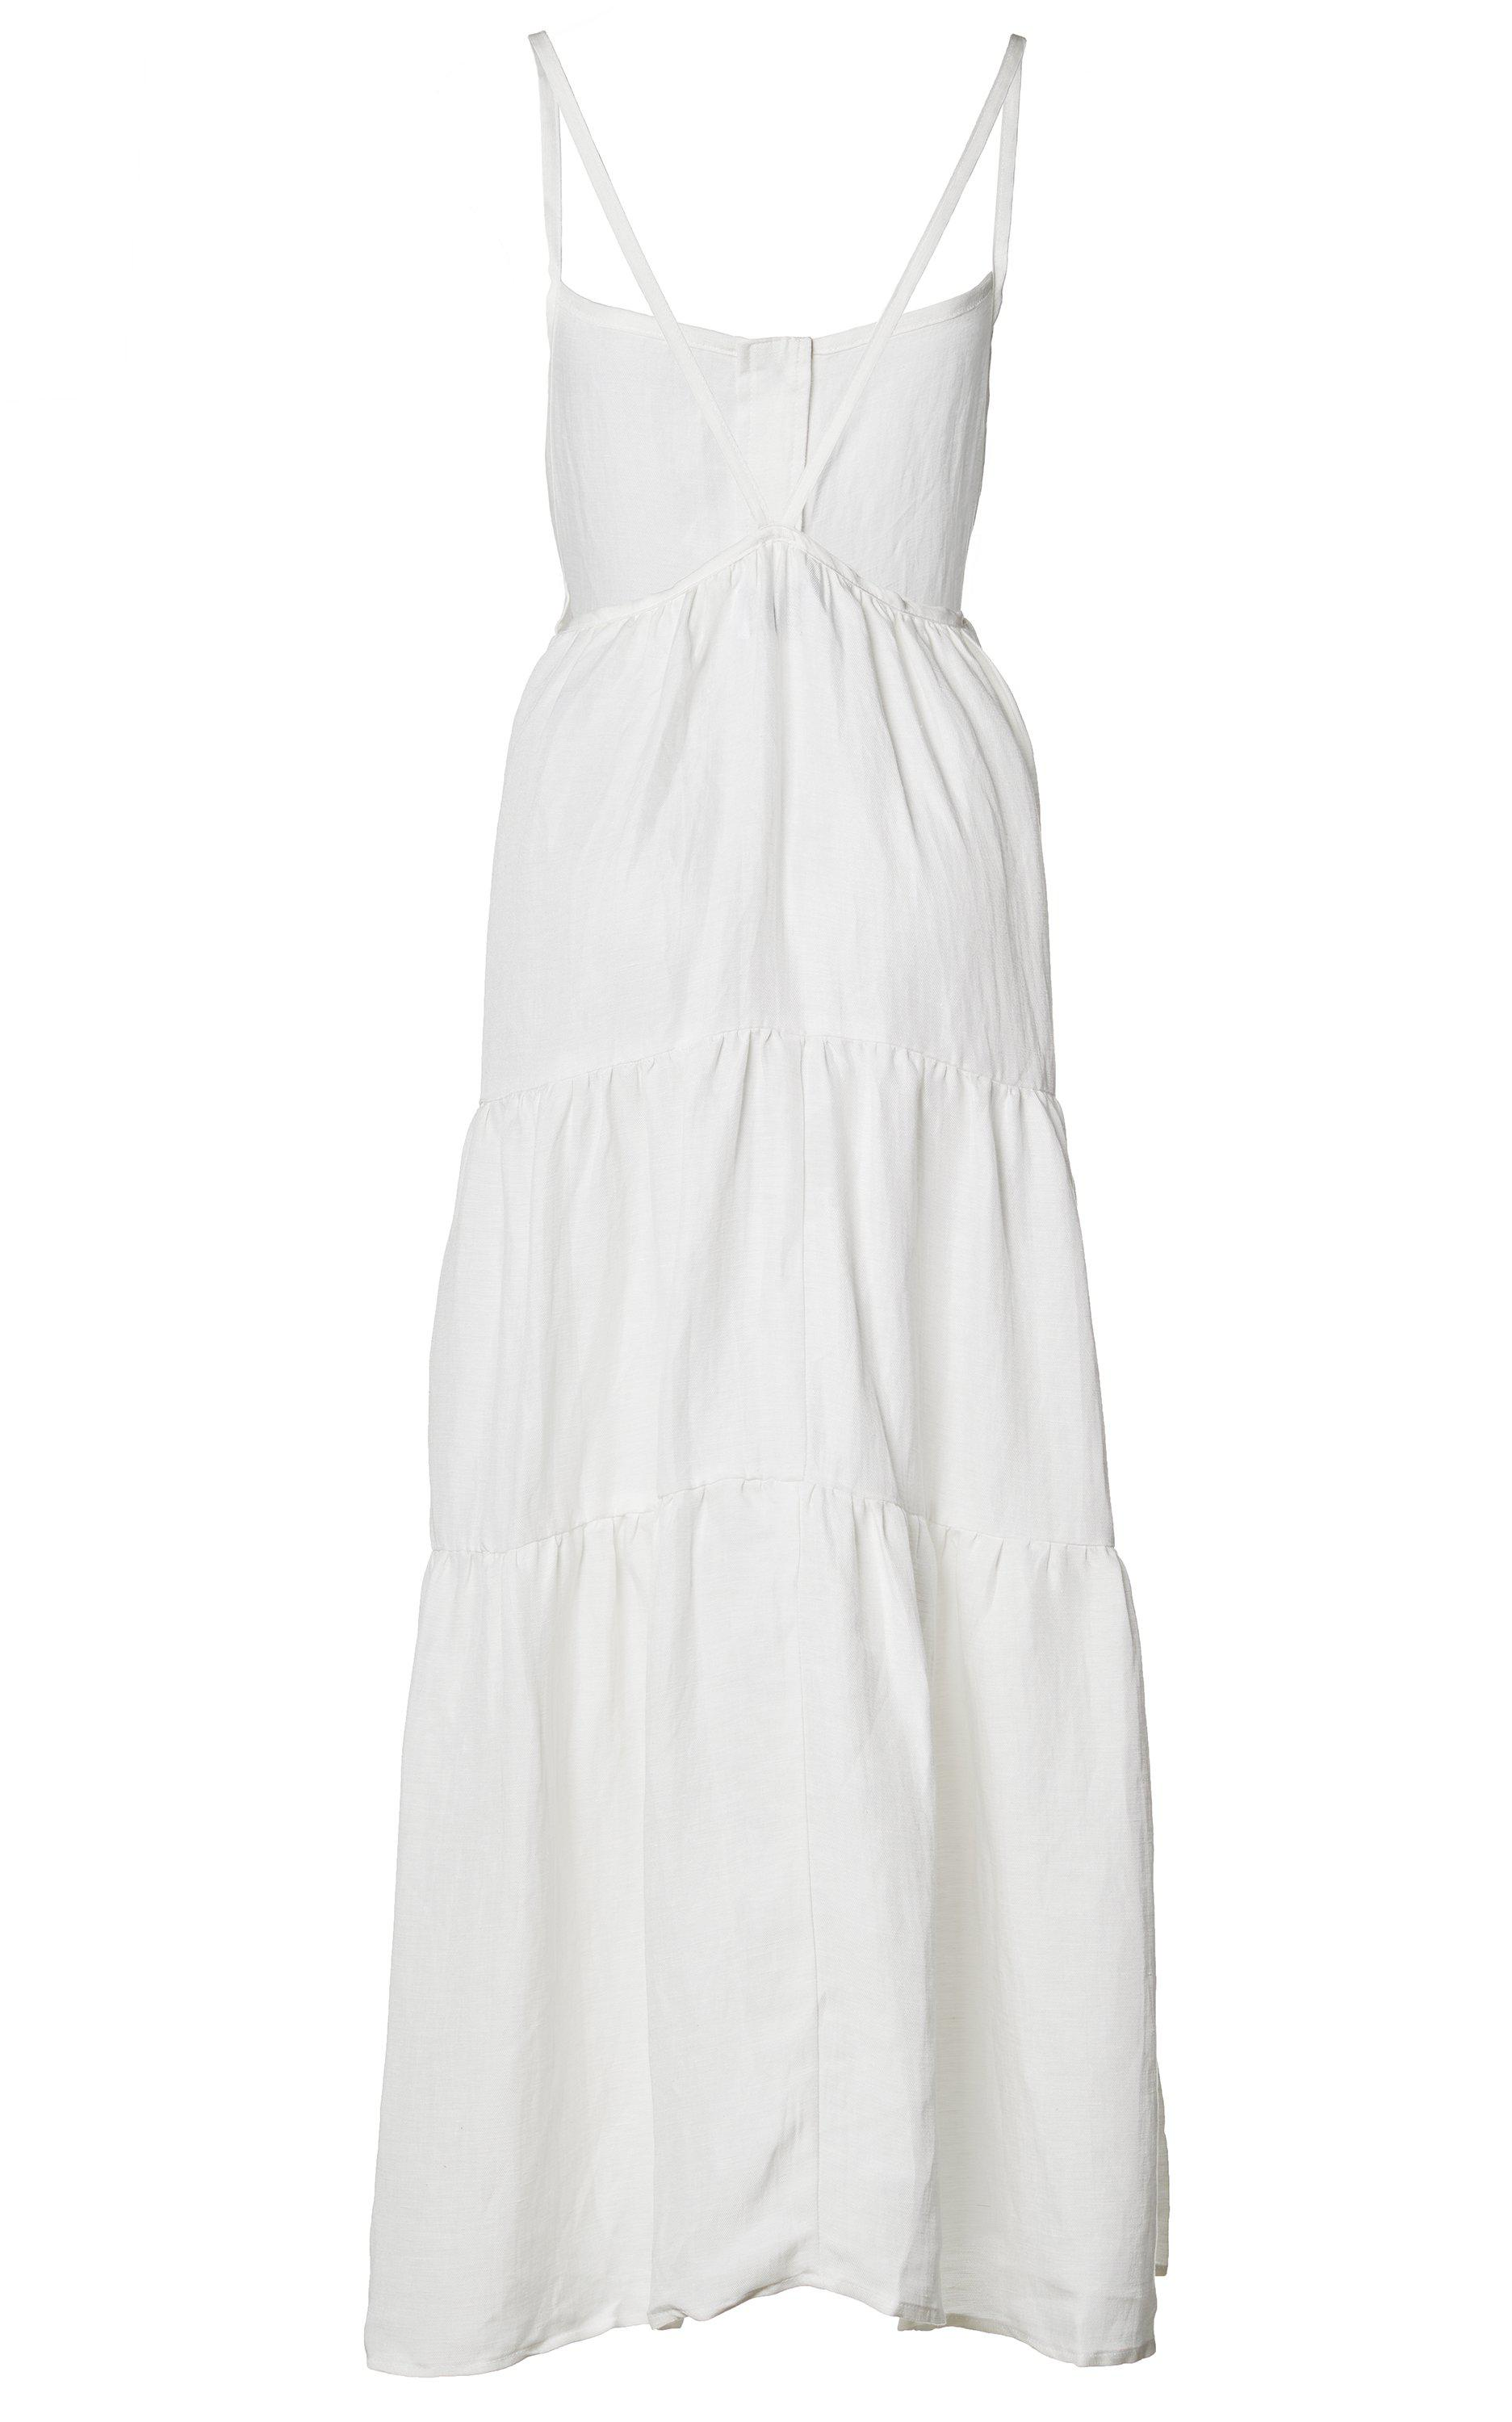 The Flounce Tiered Button-Down Midi Dress in Linen Cupro 3